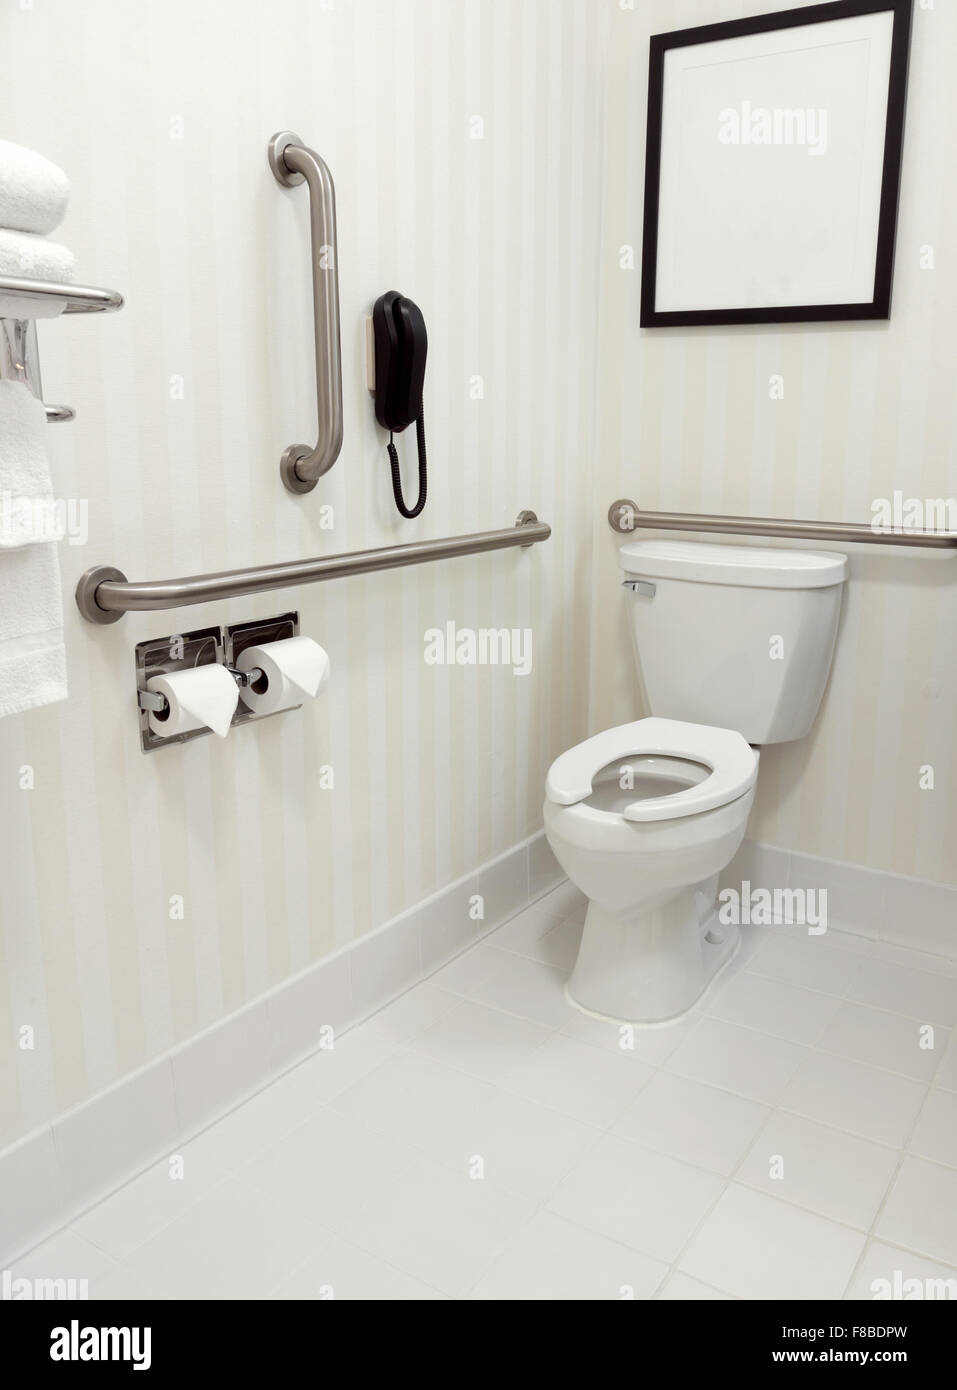 Handicapped disability access bathroom with grab bars and toilet - Stock Image